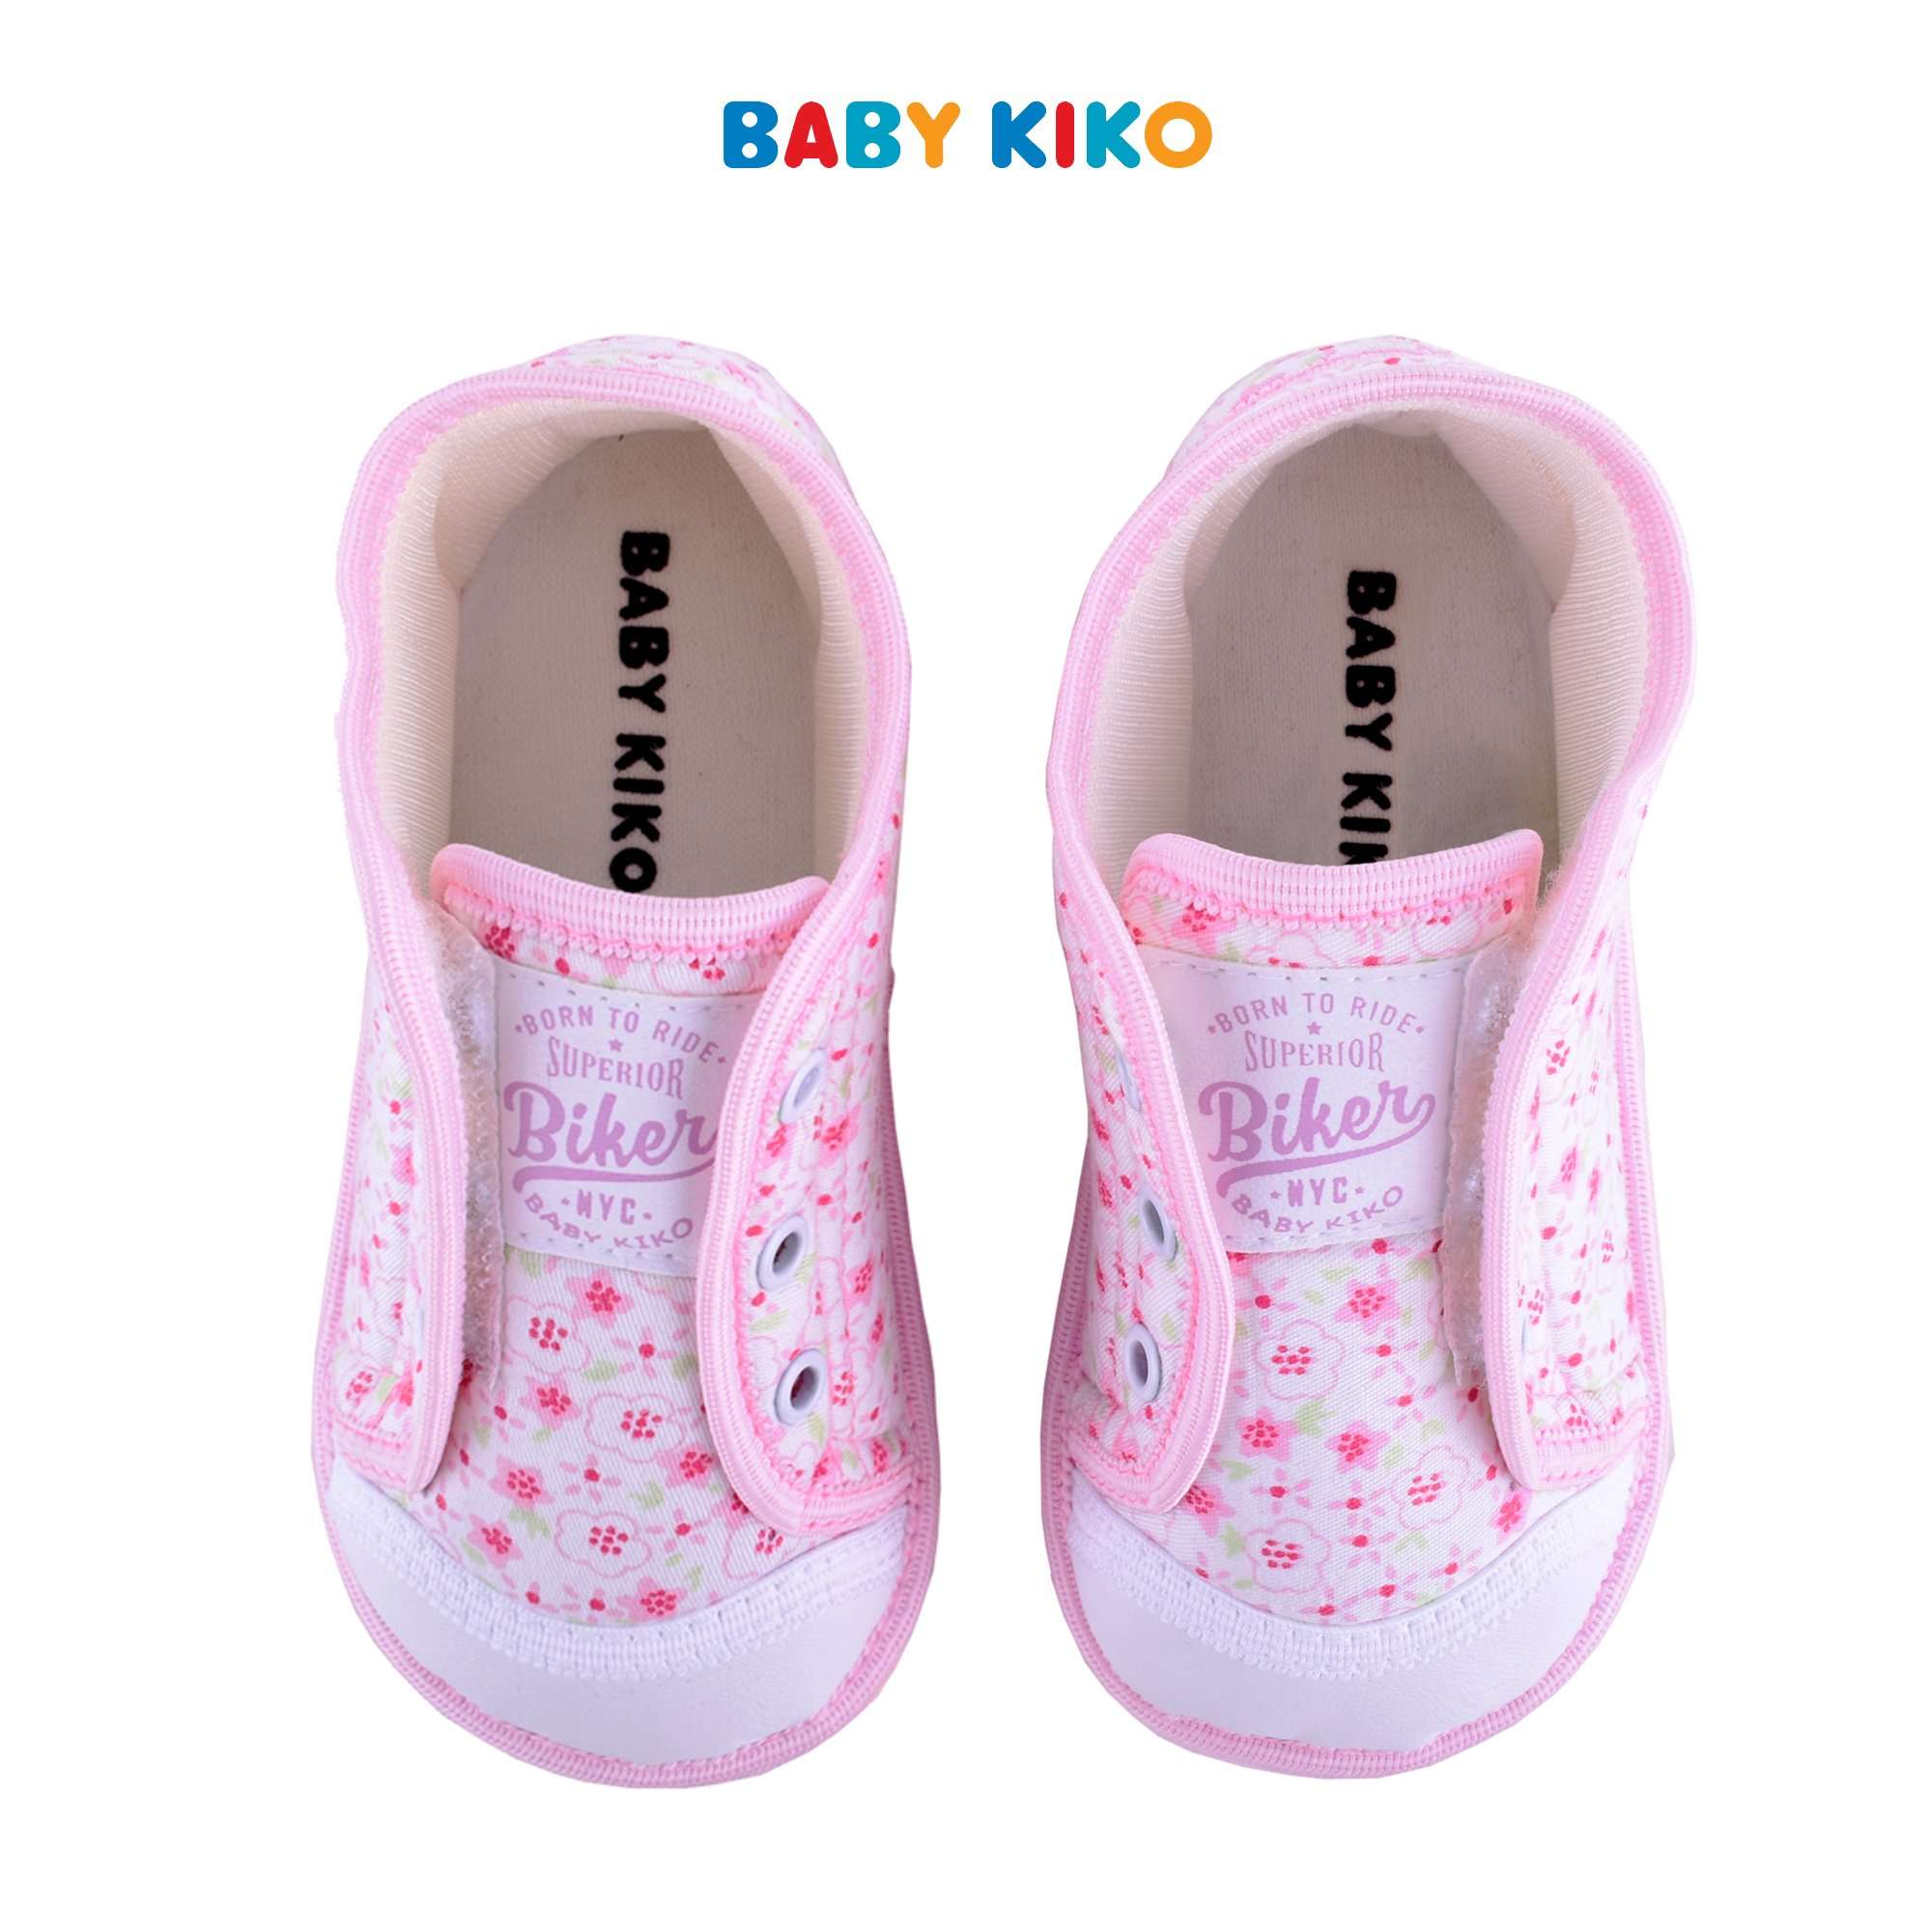 Baby KIKO Toddler Girl Textile Shoes - Pink B925106-5098-P5 : Buy Baby KIKO online at CMG.MY